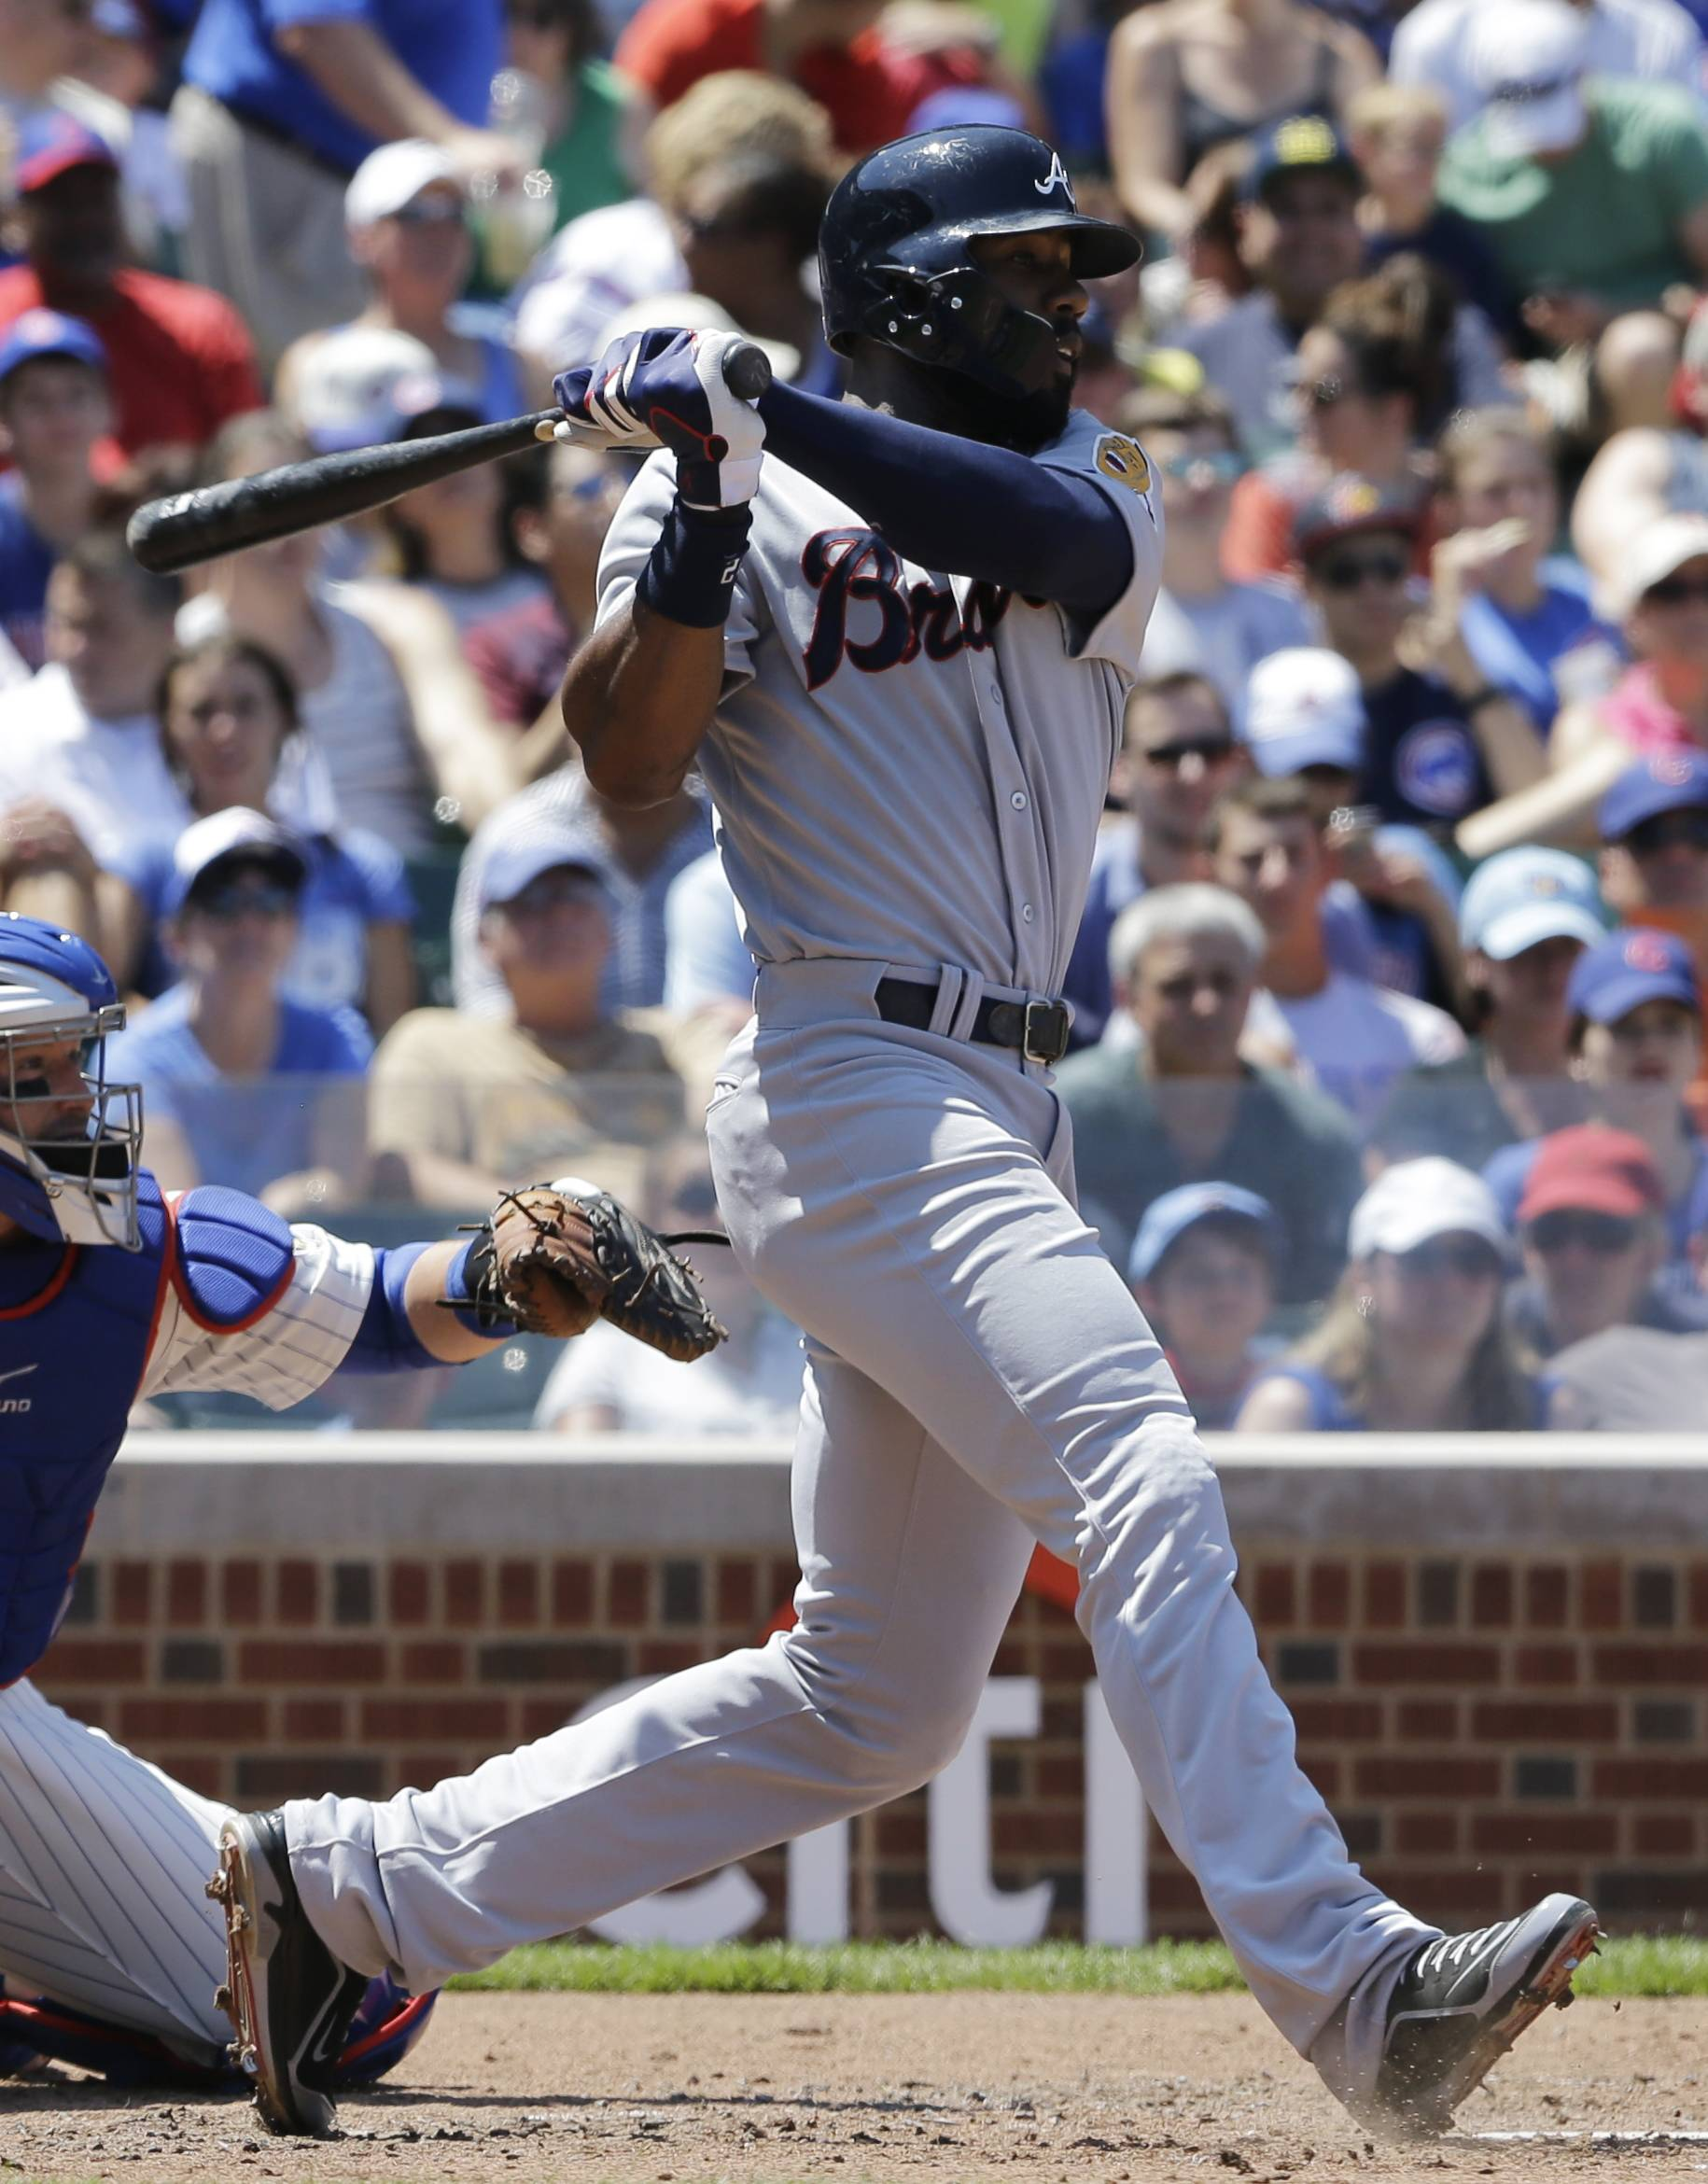 The Braves' Jason Heyward is the perfect example of the next big thing turning into just another major-league ballplayer.